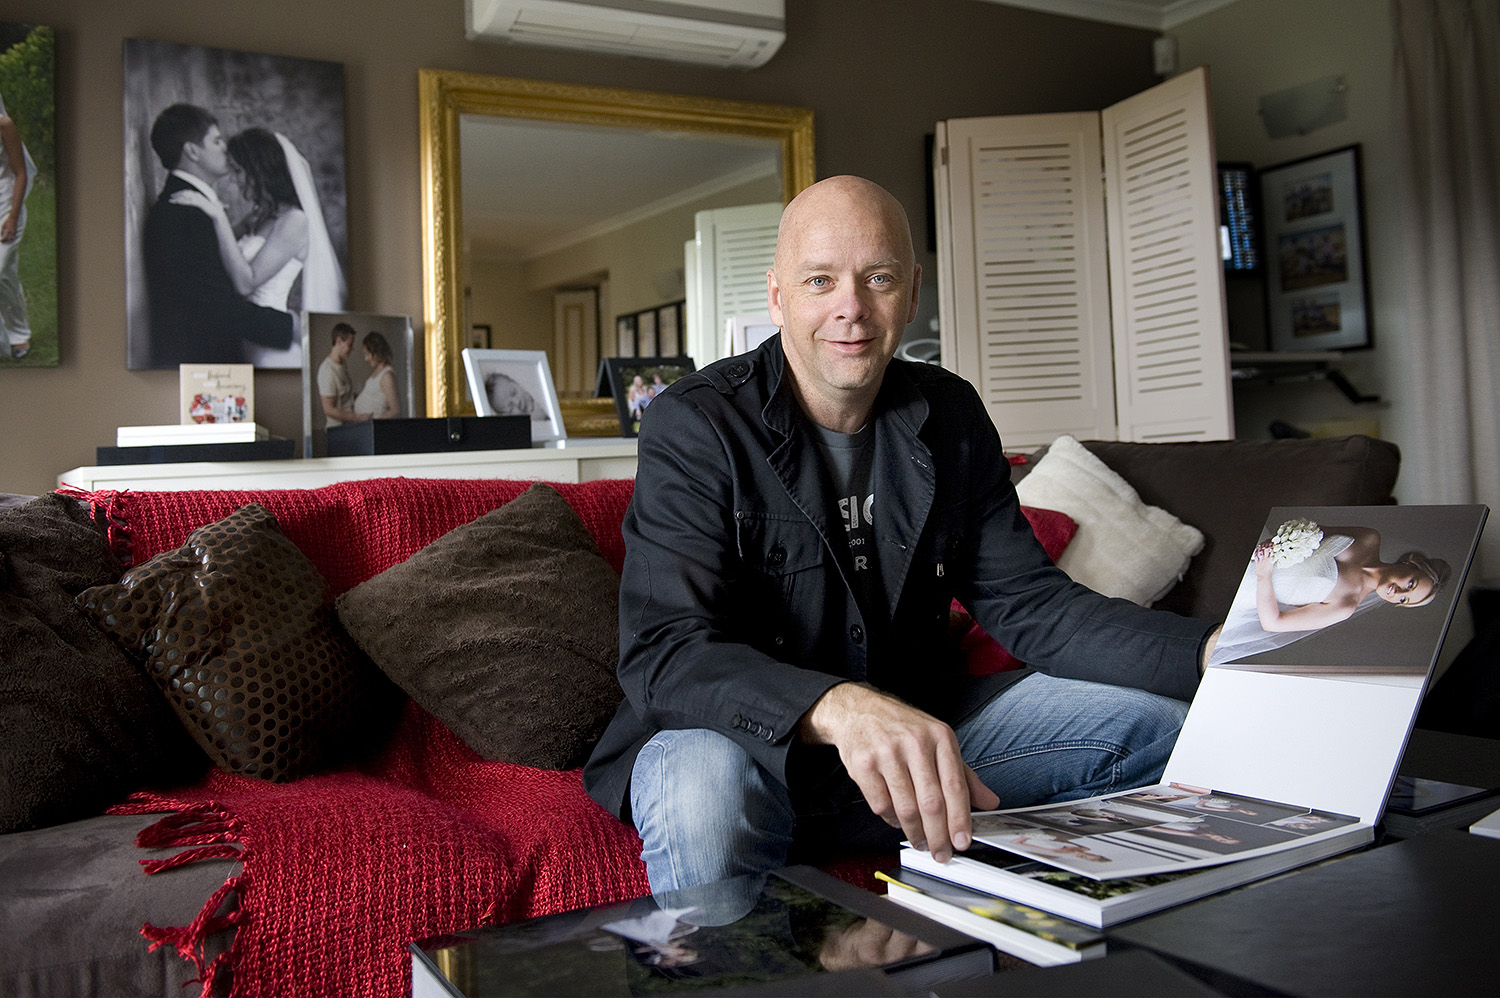 Wedding Photographer Andrew Harrison in his home studio viewing room